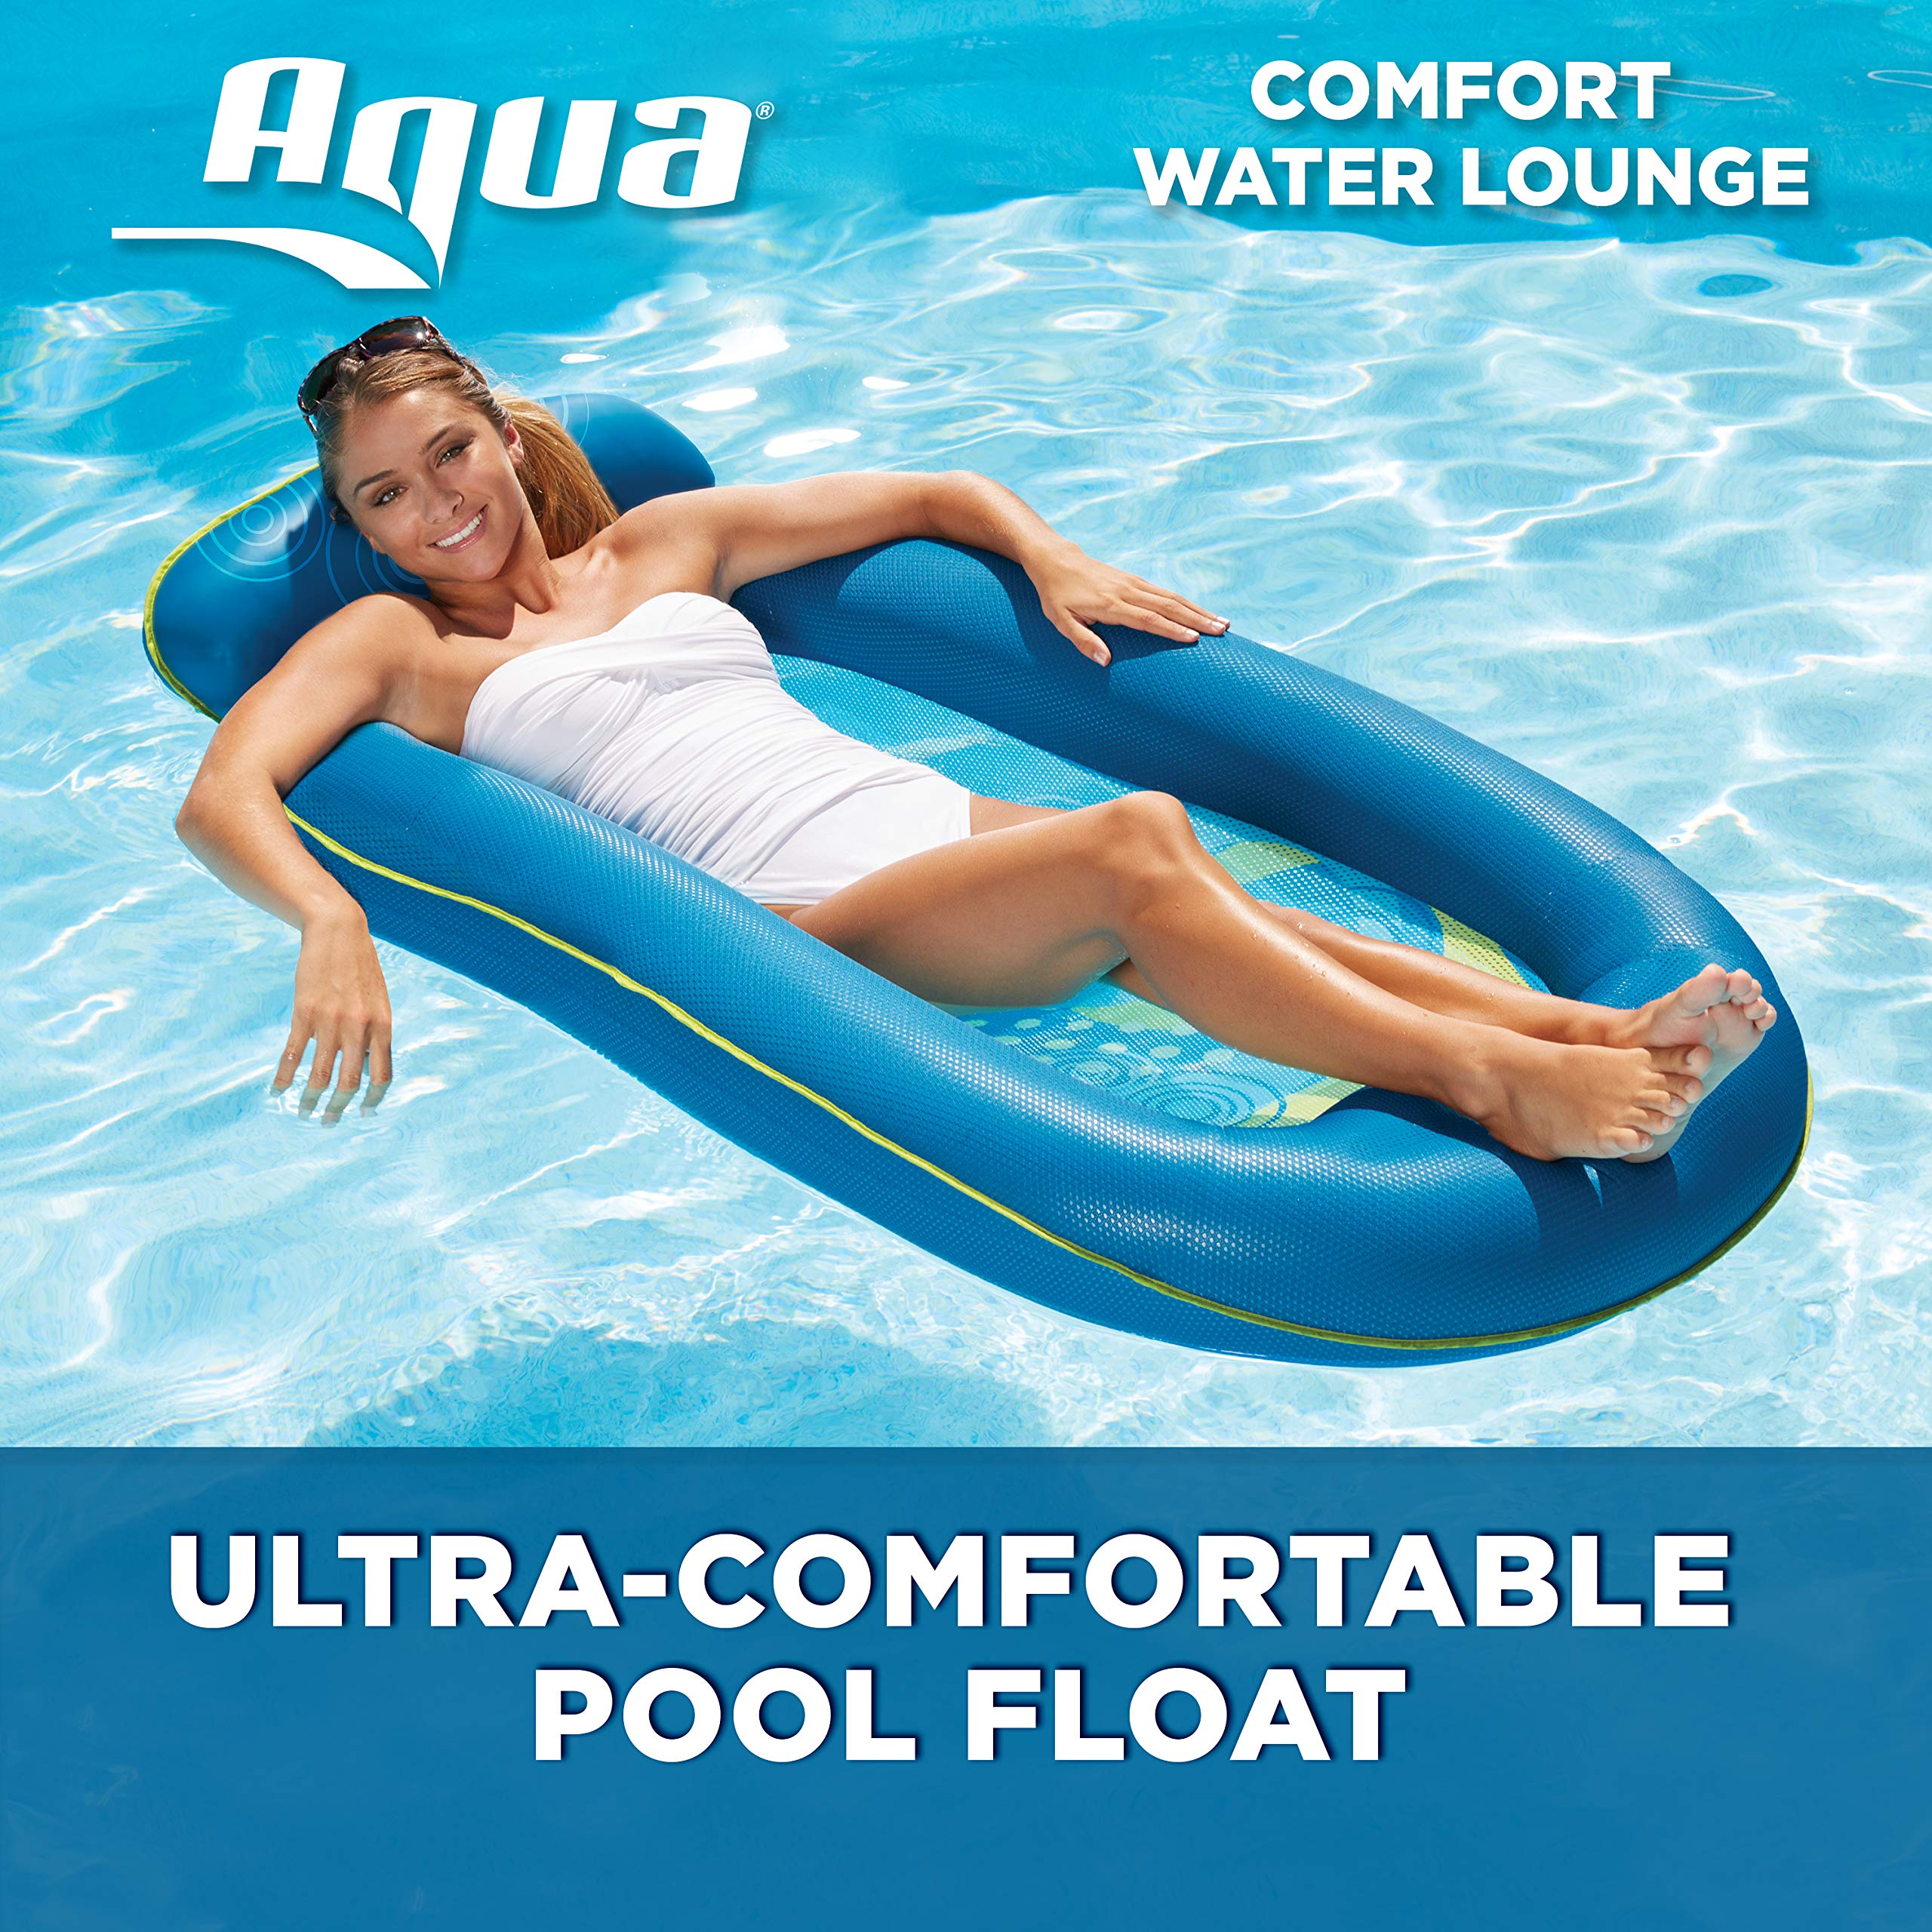 Aqua Comfort Water Lounge, X-Large, Inflatable Pool Float with Headrest & Footrest, Blue Bubble Waves by Aqua